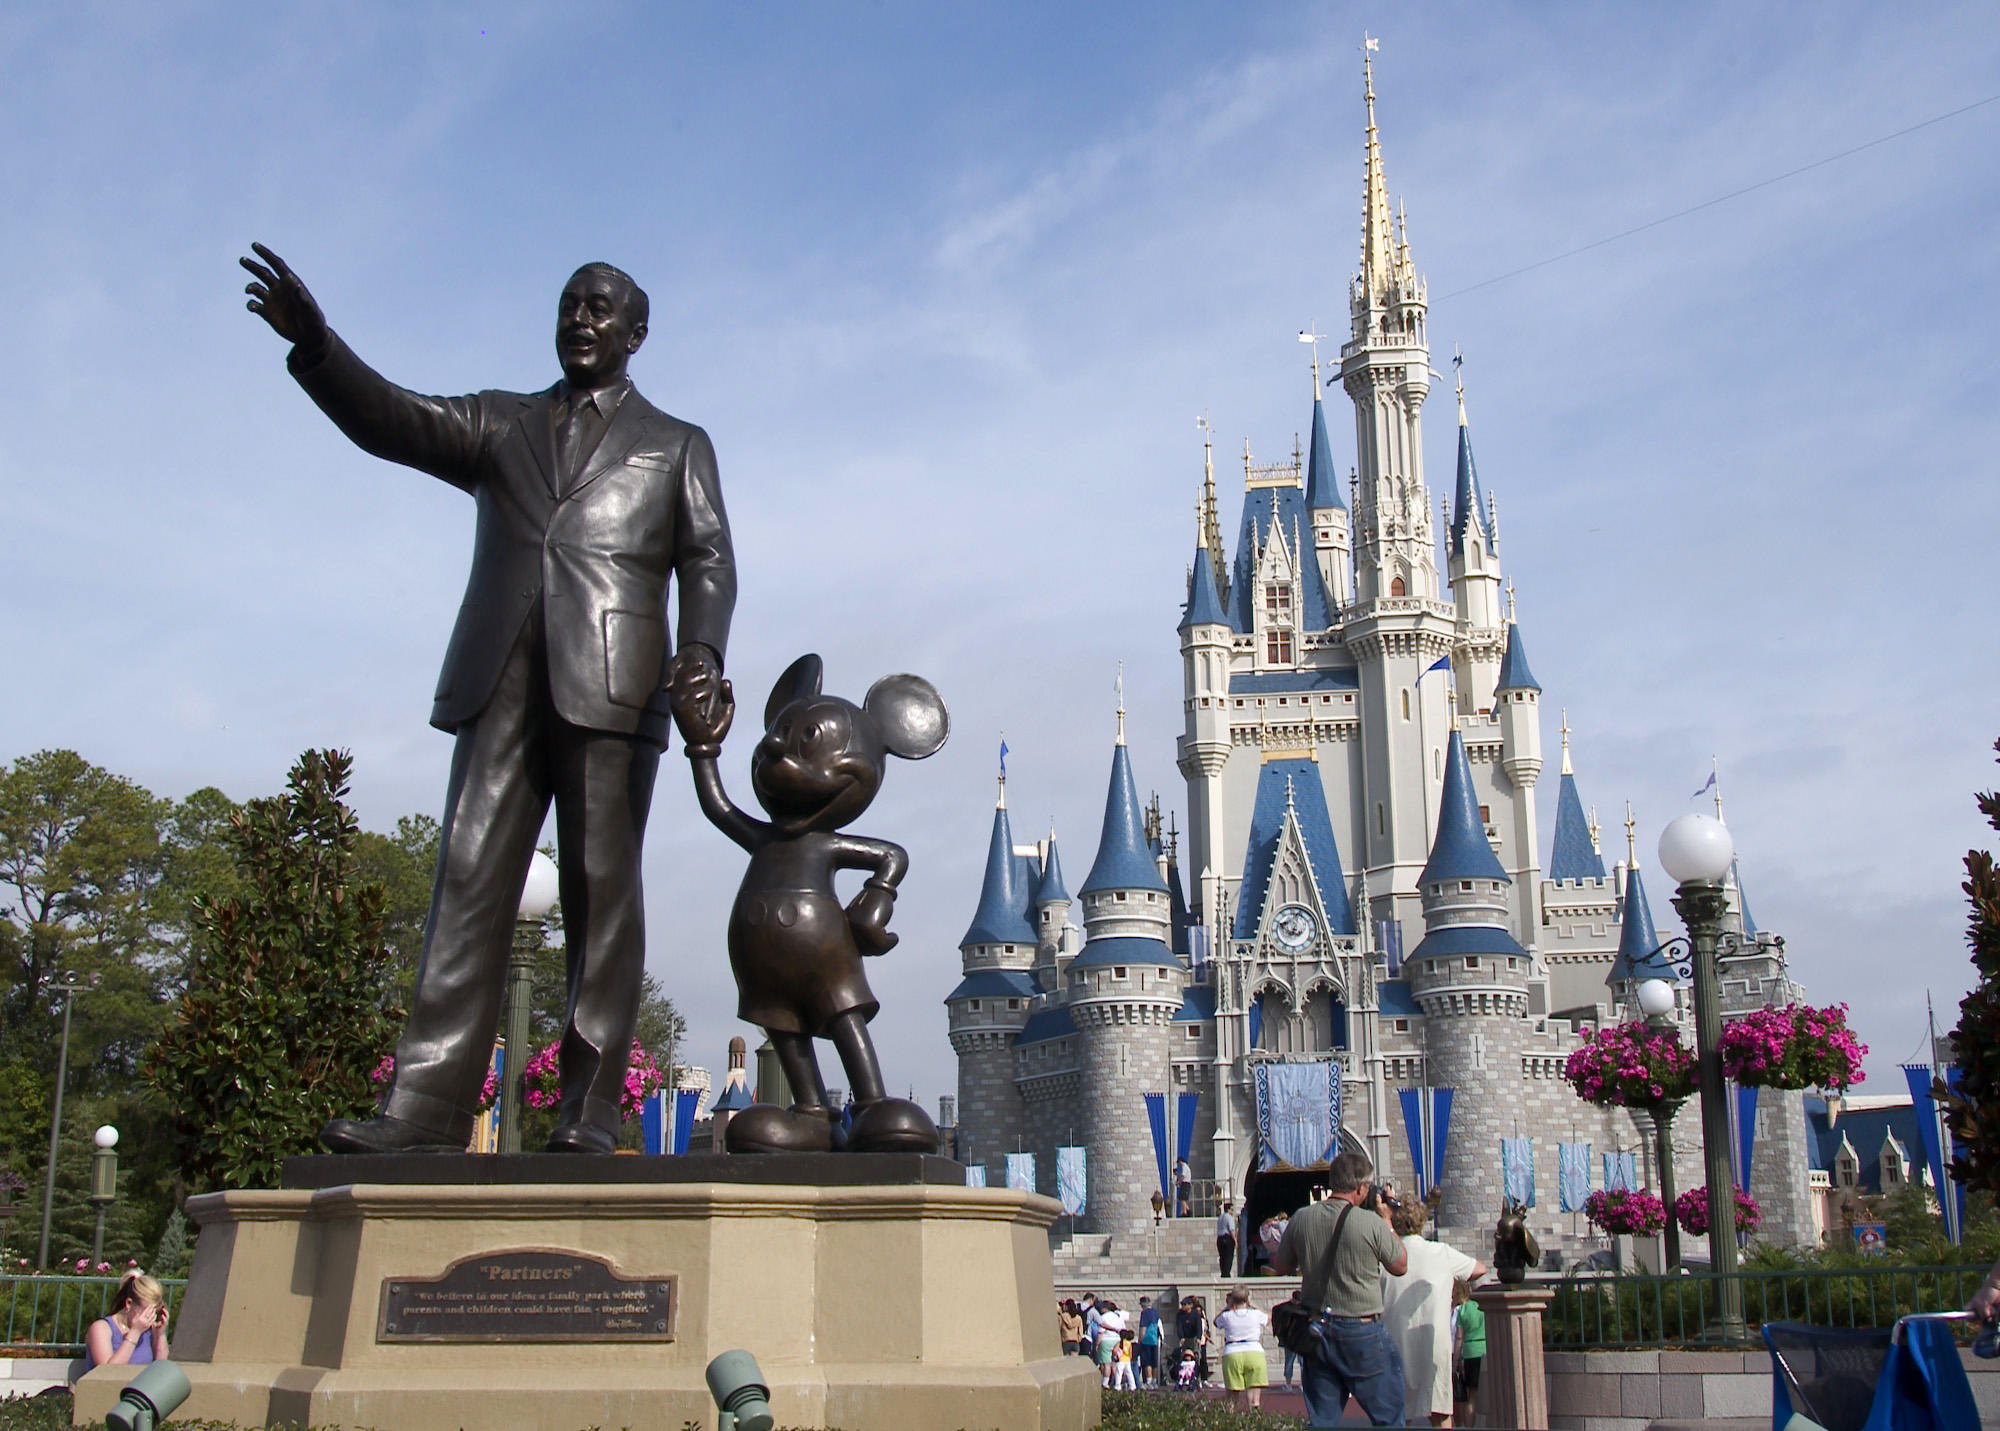 A statue of Walt Disney and Mickey Mouse stands in front of the Cinderella's castle at Walt Disney World's Magic Kingdom